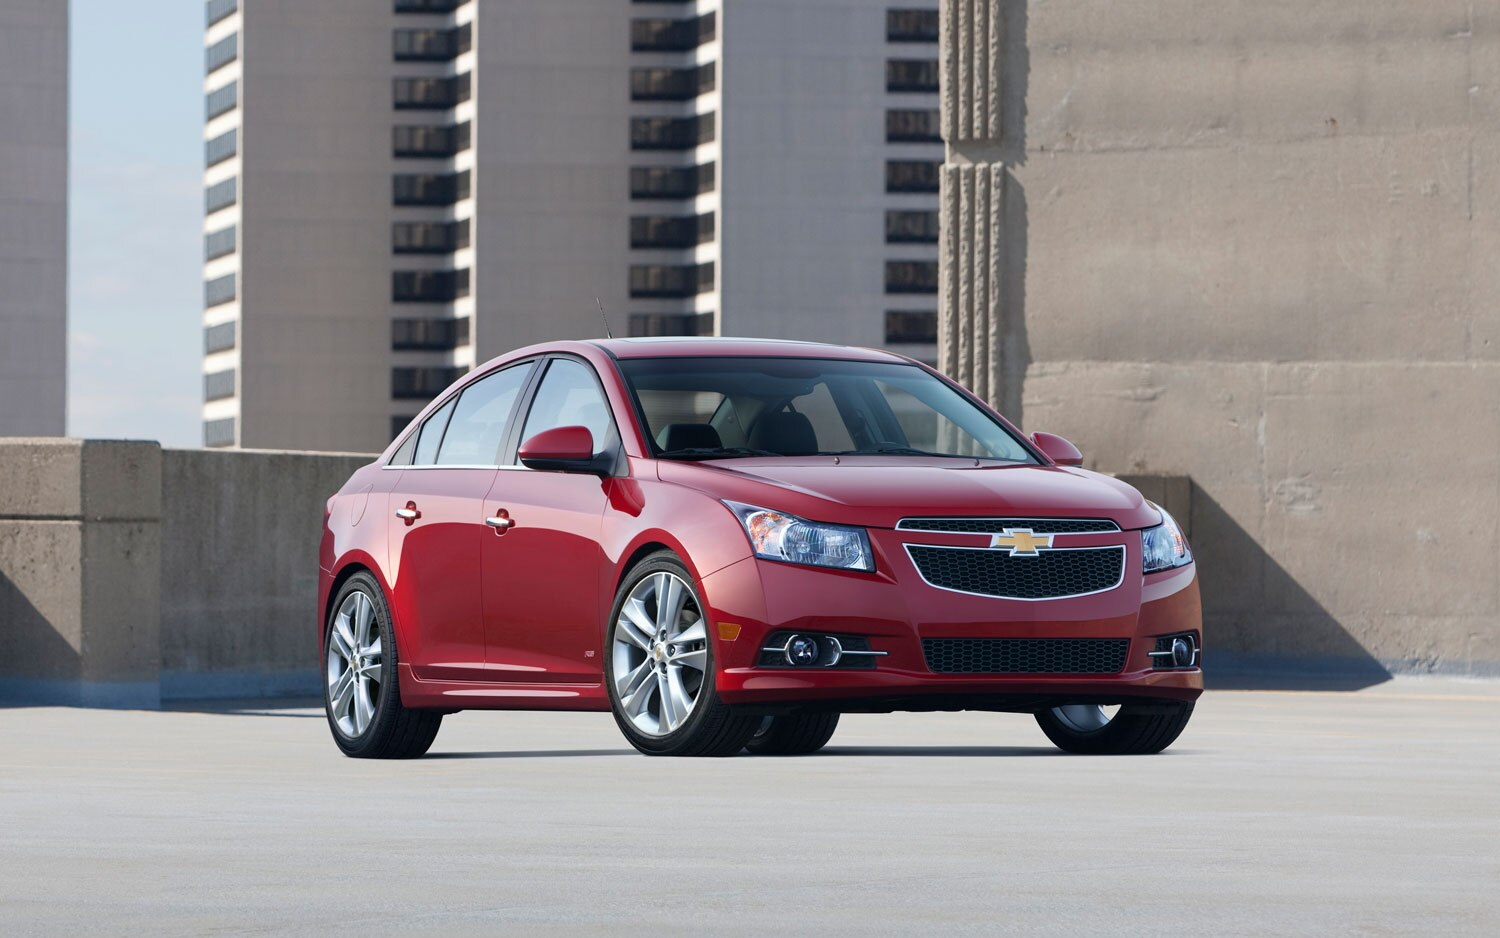 2013 Chevrolet Cruze Front Three Quarter View1